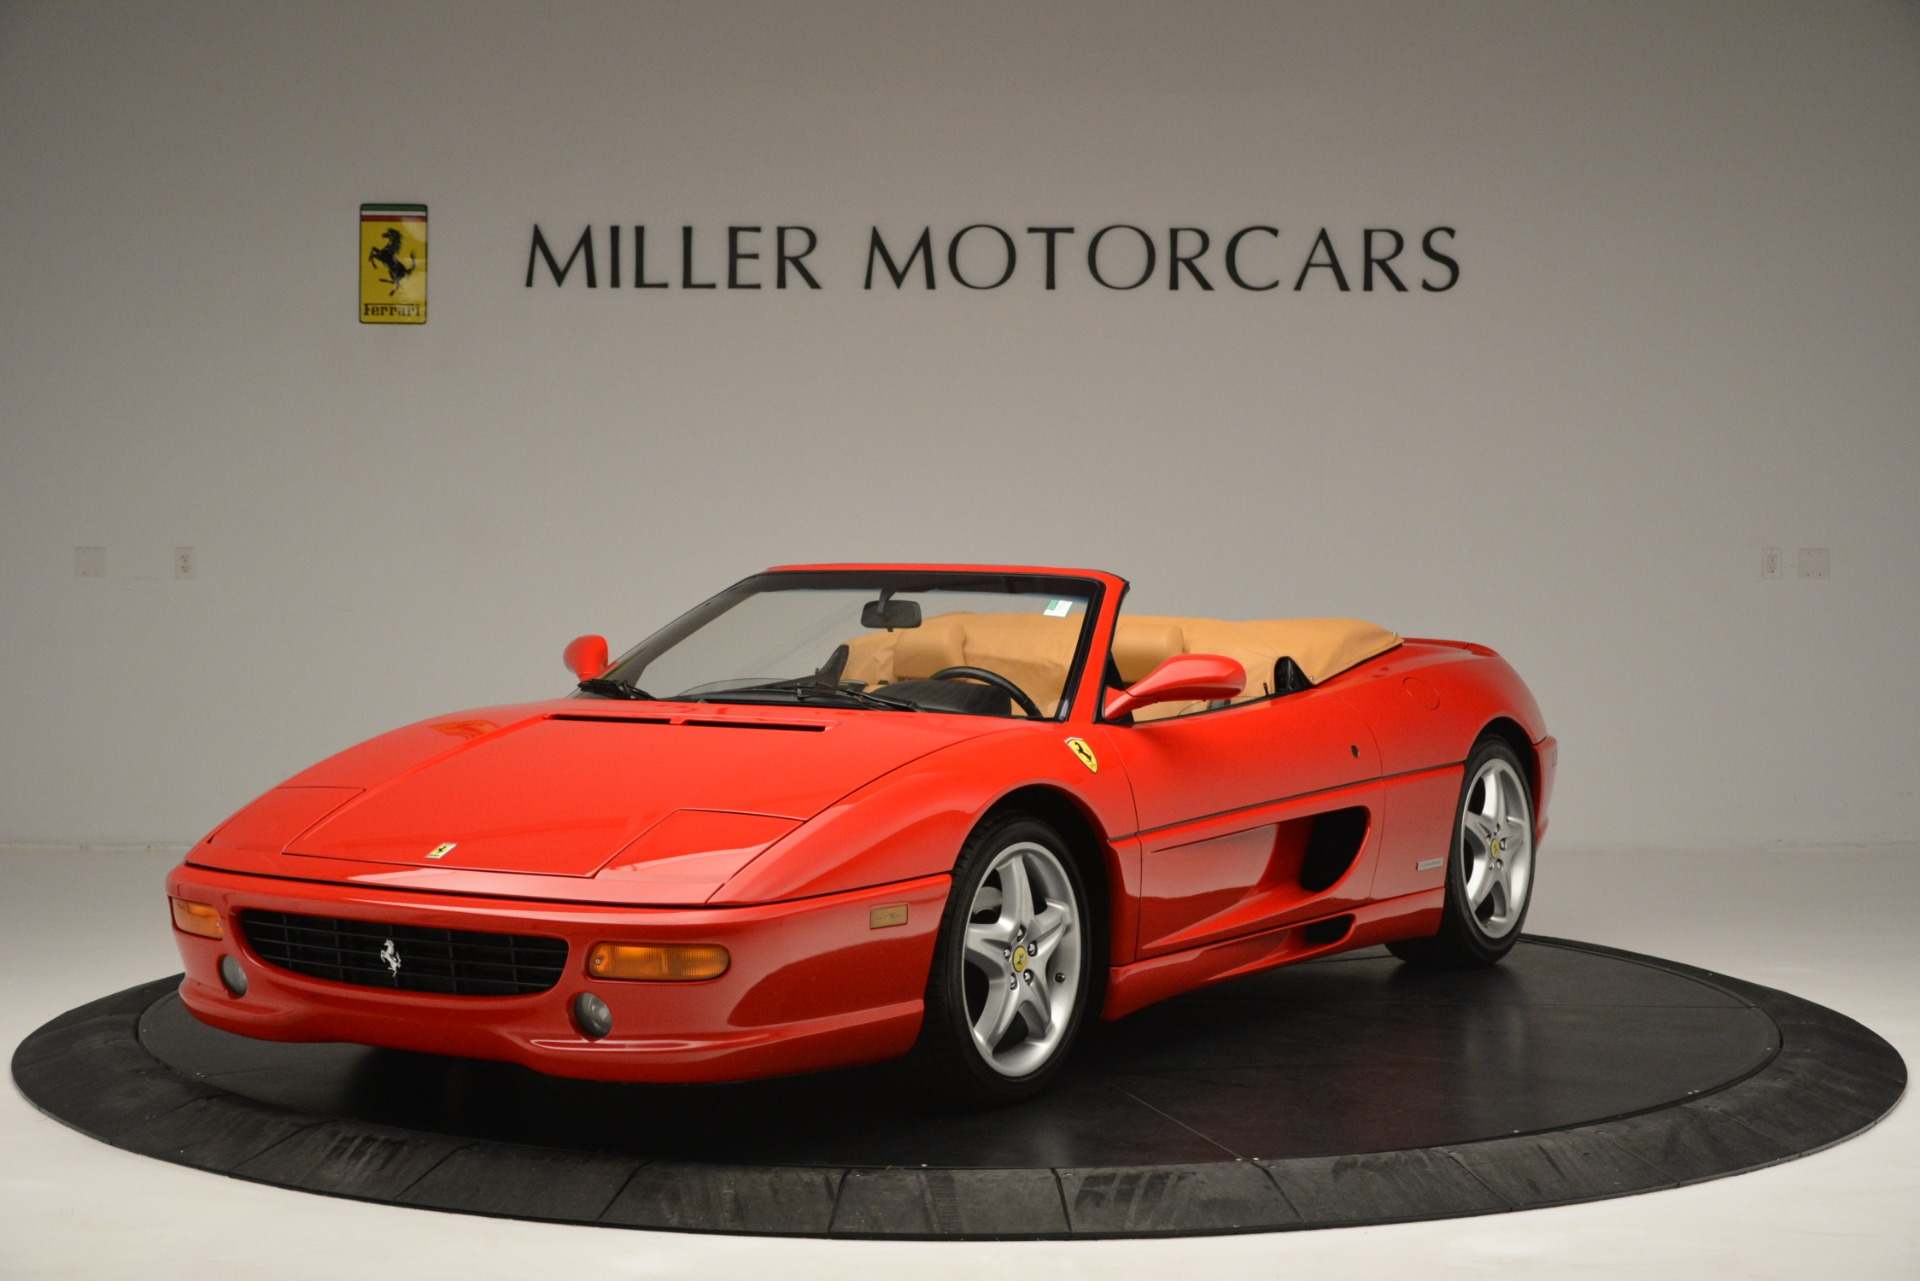 Used 1997 Ferrari 355 Spider 6-Speed Manual for sale Sold at Aston Martin of Greenwich in Greenwich CT 06830 1